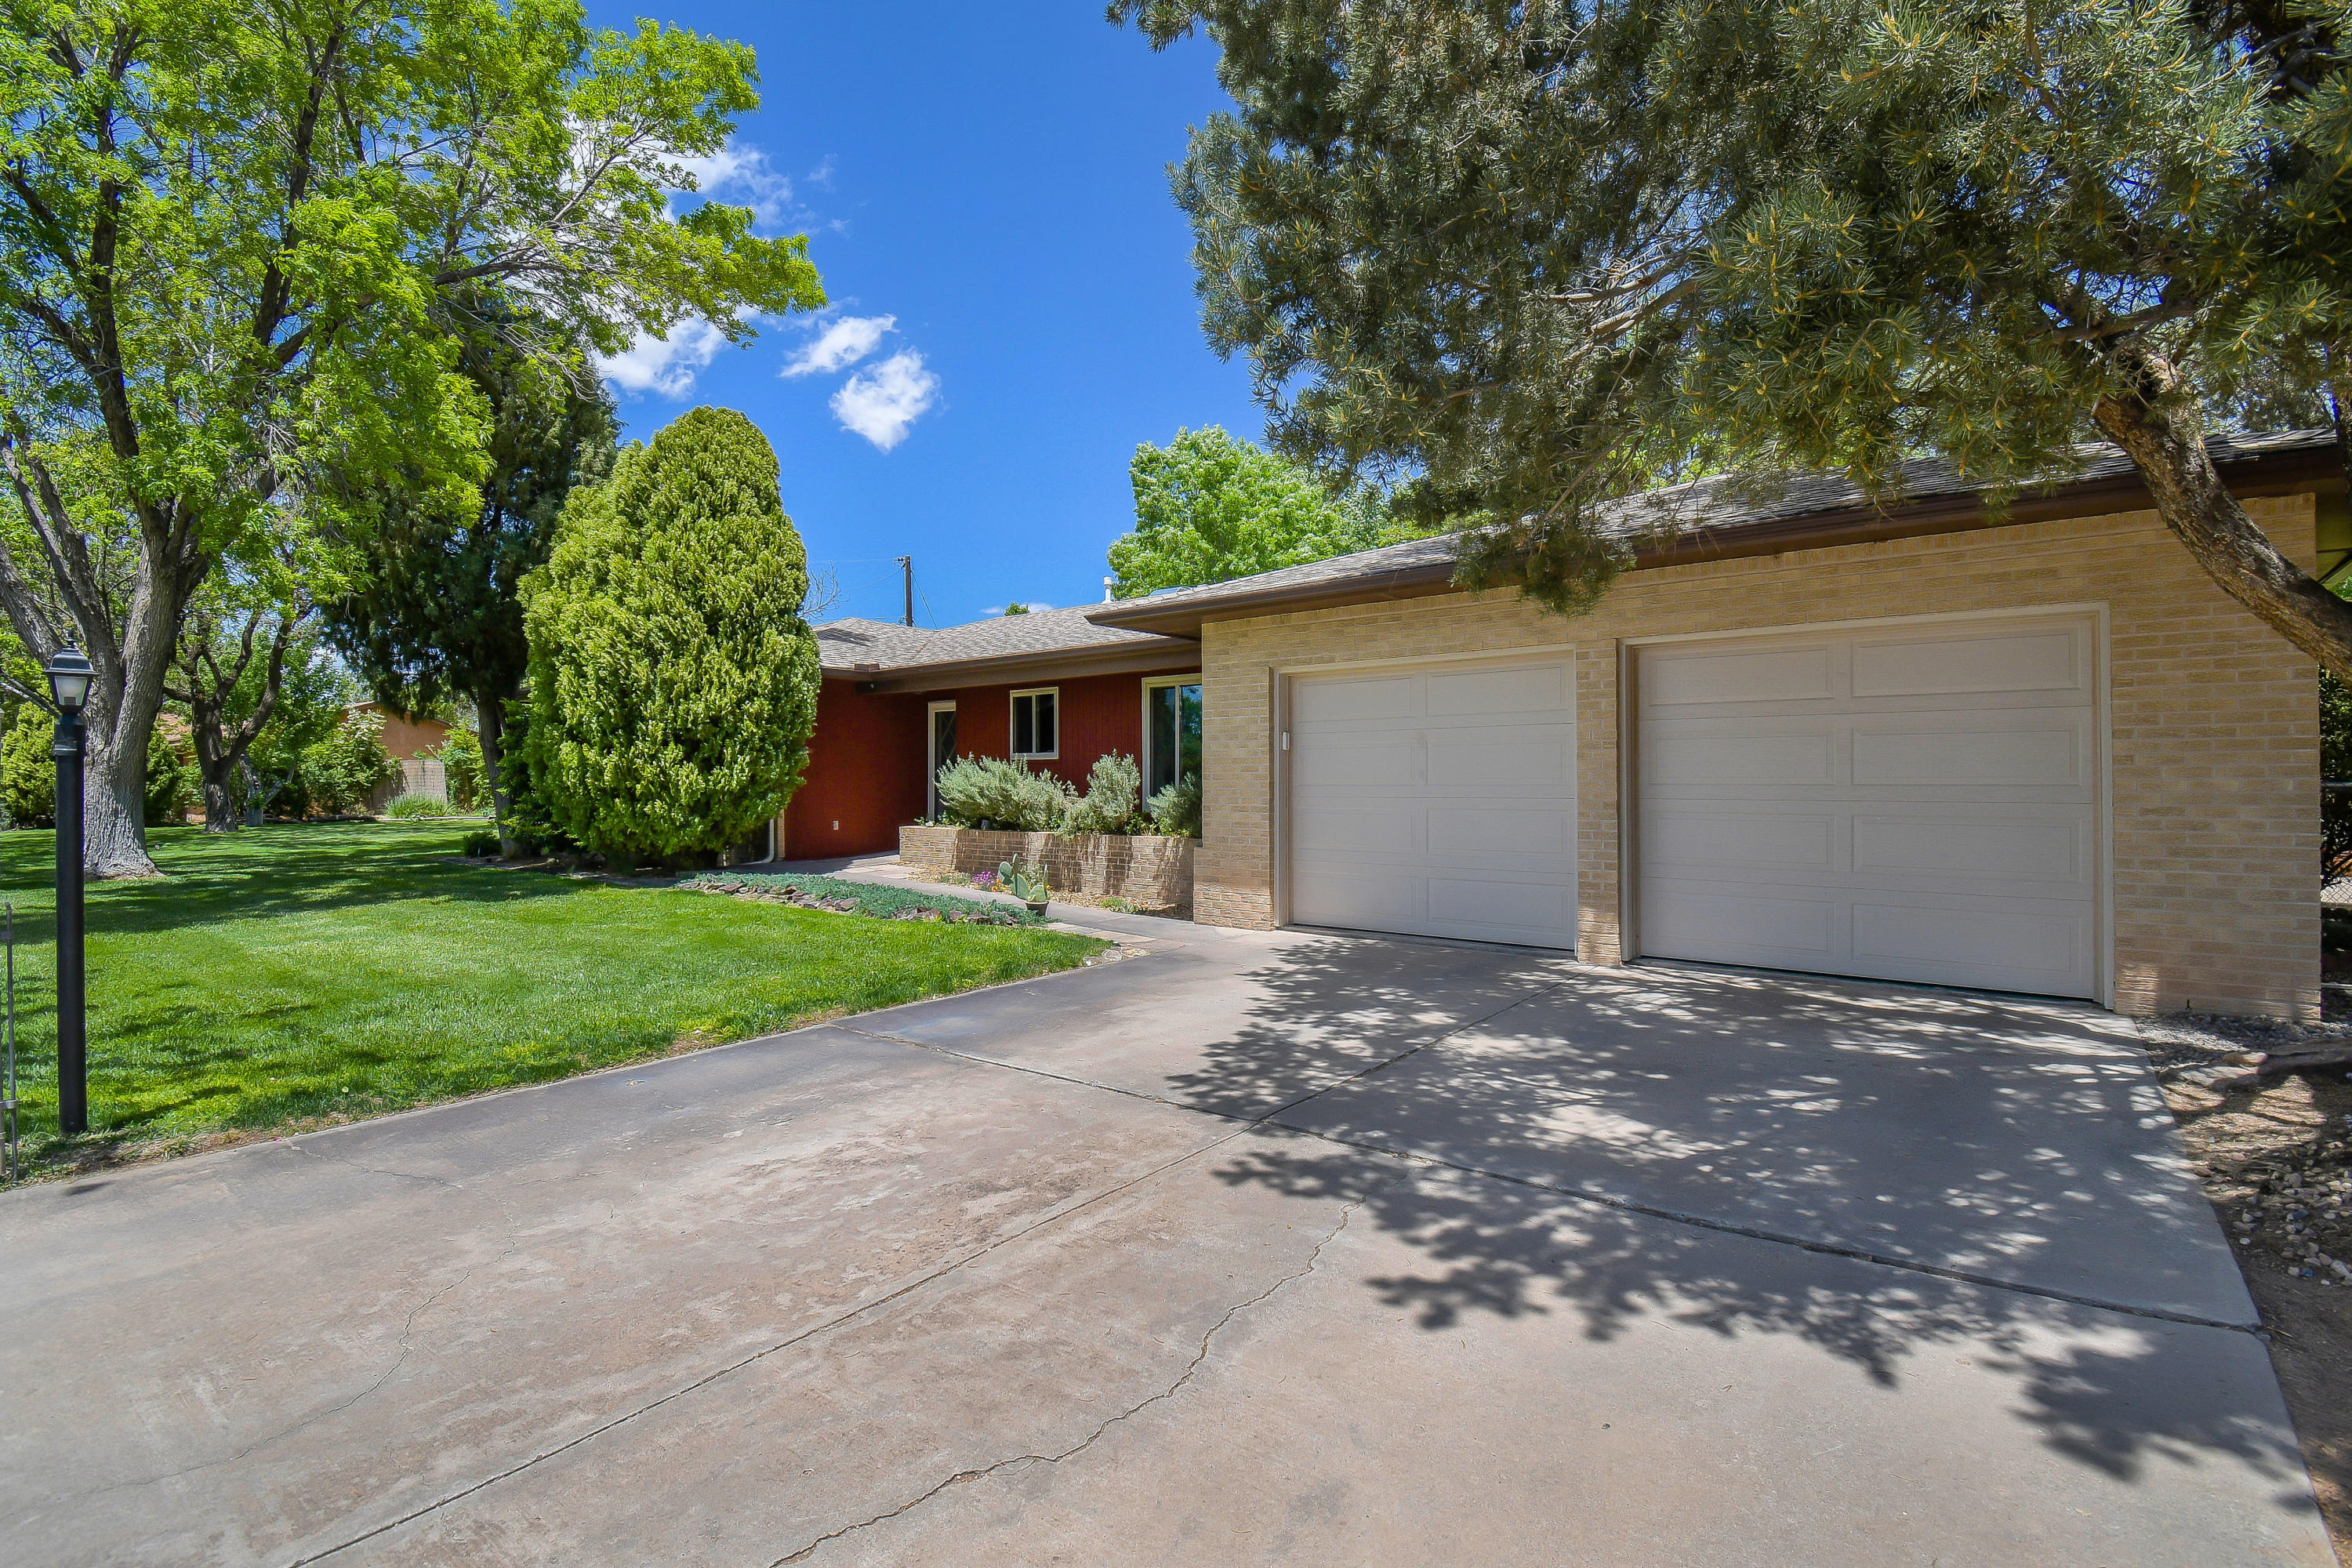 1st showings at Grande Open House Sun 5/16 from 1-3 pm. The North Valley at it's finest! Convenient location tucked on a quiet cul de sac. Beautifully renovated One Level 3 bedroom, 2 bath, 2 car garage on lush .66 acre with a new deep well to keep it green!  Artists, Craftsman, Yogi's don't miss the 32'x32' heated & cooled studio with attached 1 garage. Classic Refinished Oak wood flooring. OWNED Solar system. Stunning Chef's kitchen features smartly designed new cabinetry, granite counters and stainless appliances. Relaxing living area with a masonry gas log fireplace plus a flex space that connects the home to the heated sunroom filled with glass and outdoor inside. Mature trees, plants, bushes, fruit trees, mature landscaping, raised bed gardens. Quick access to I-25,Balloon Park, APO.